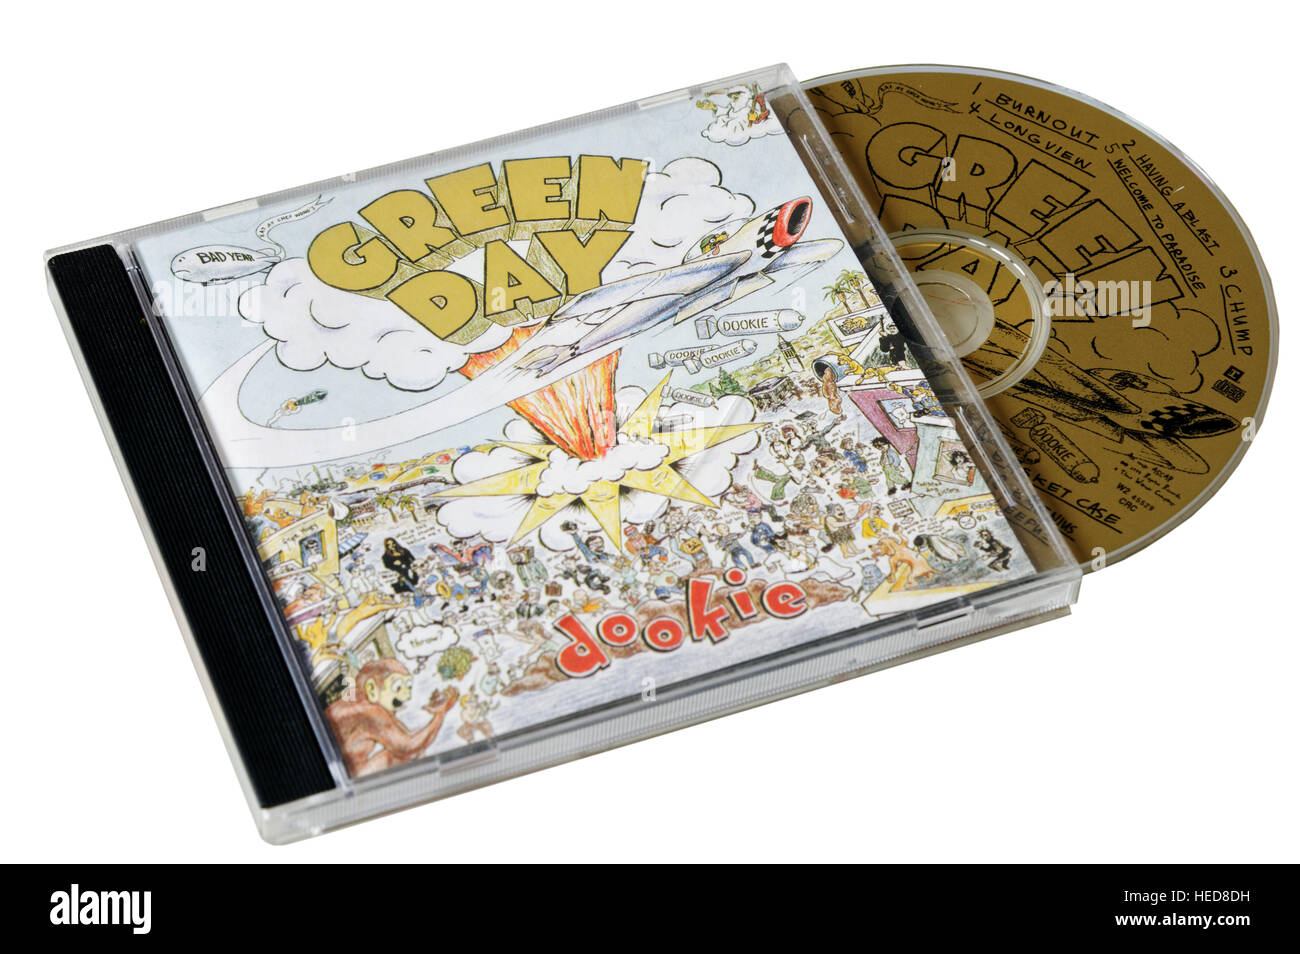 Green Day Dookie CD - Stock Image